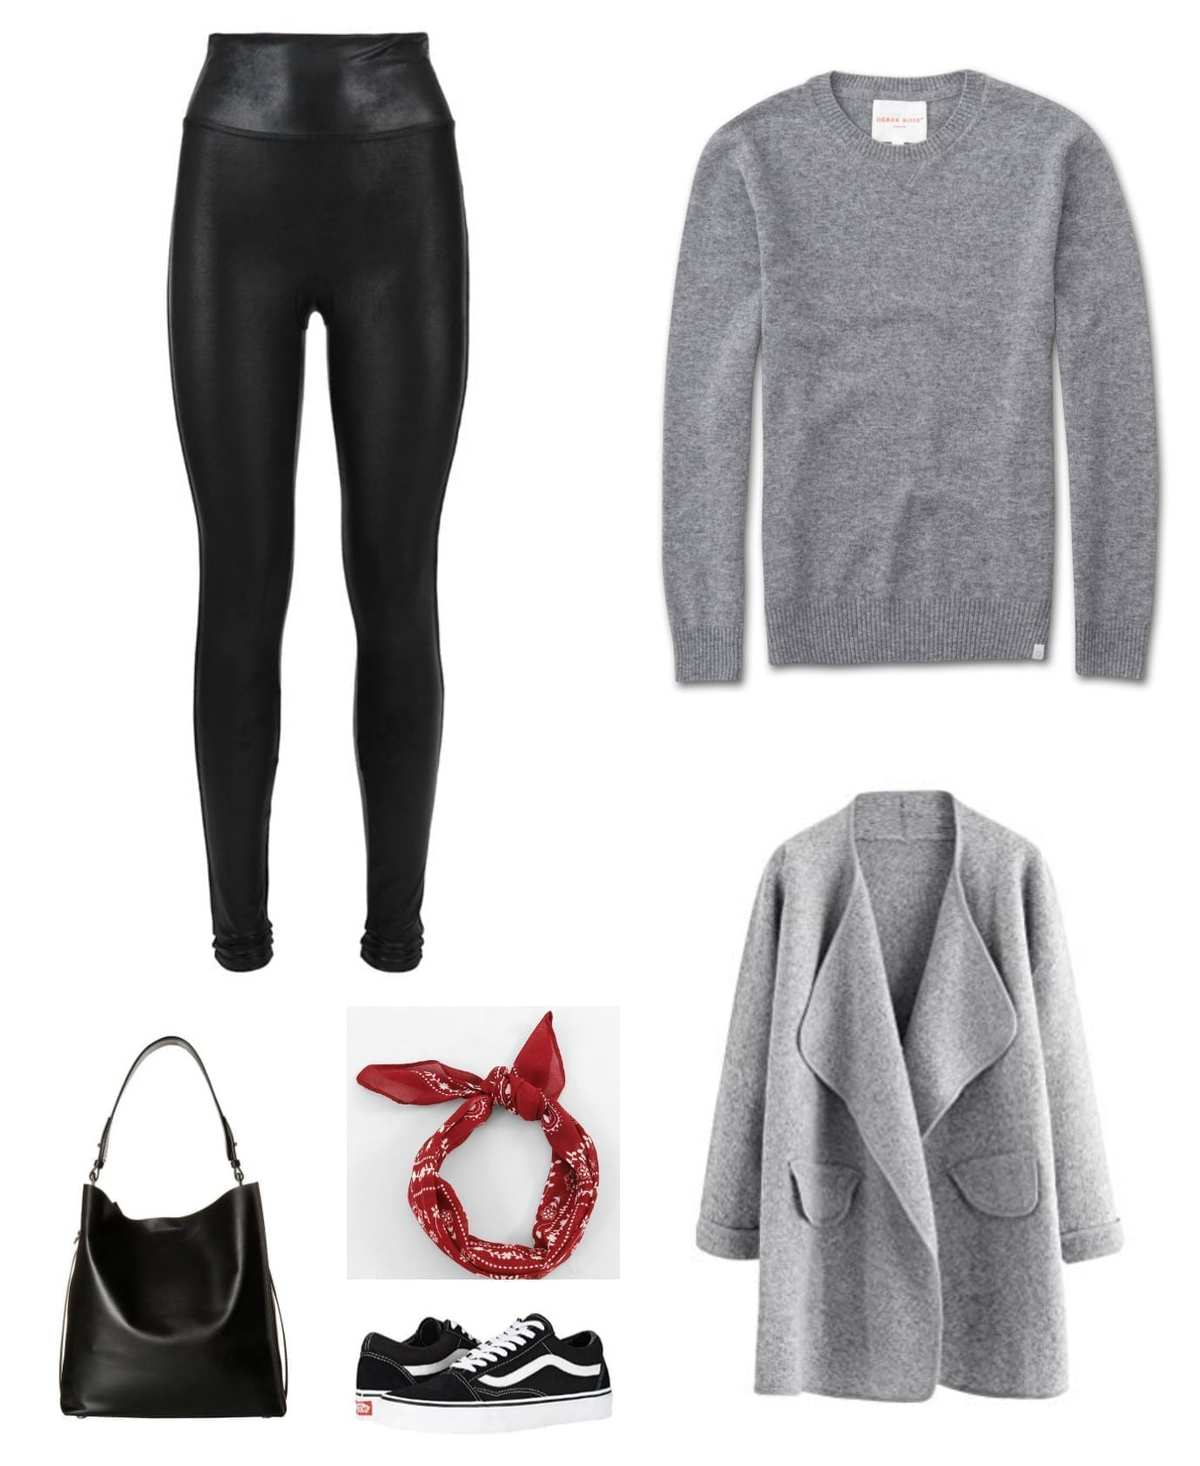 tips on styling leather leggings